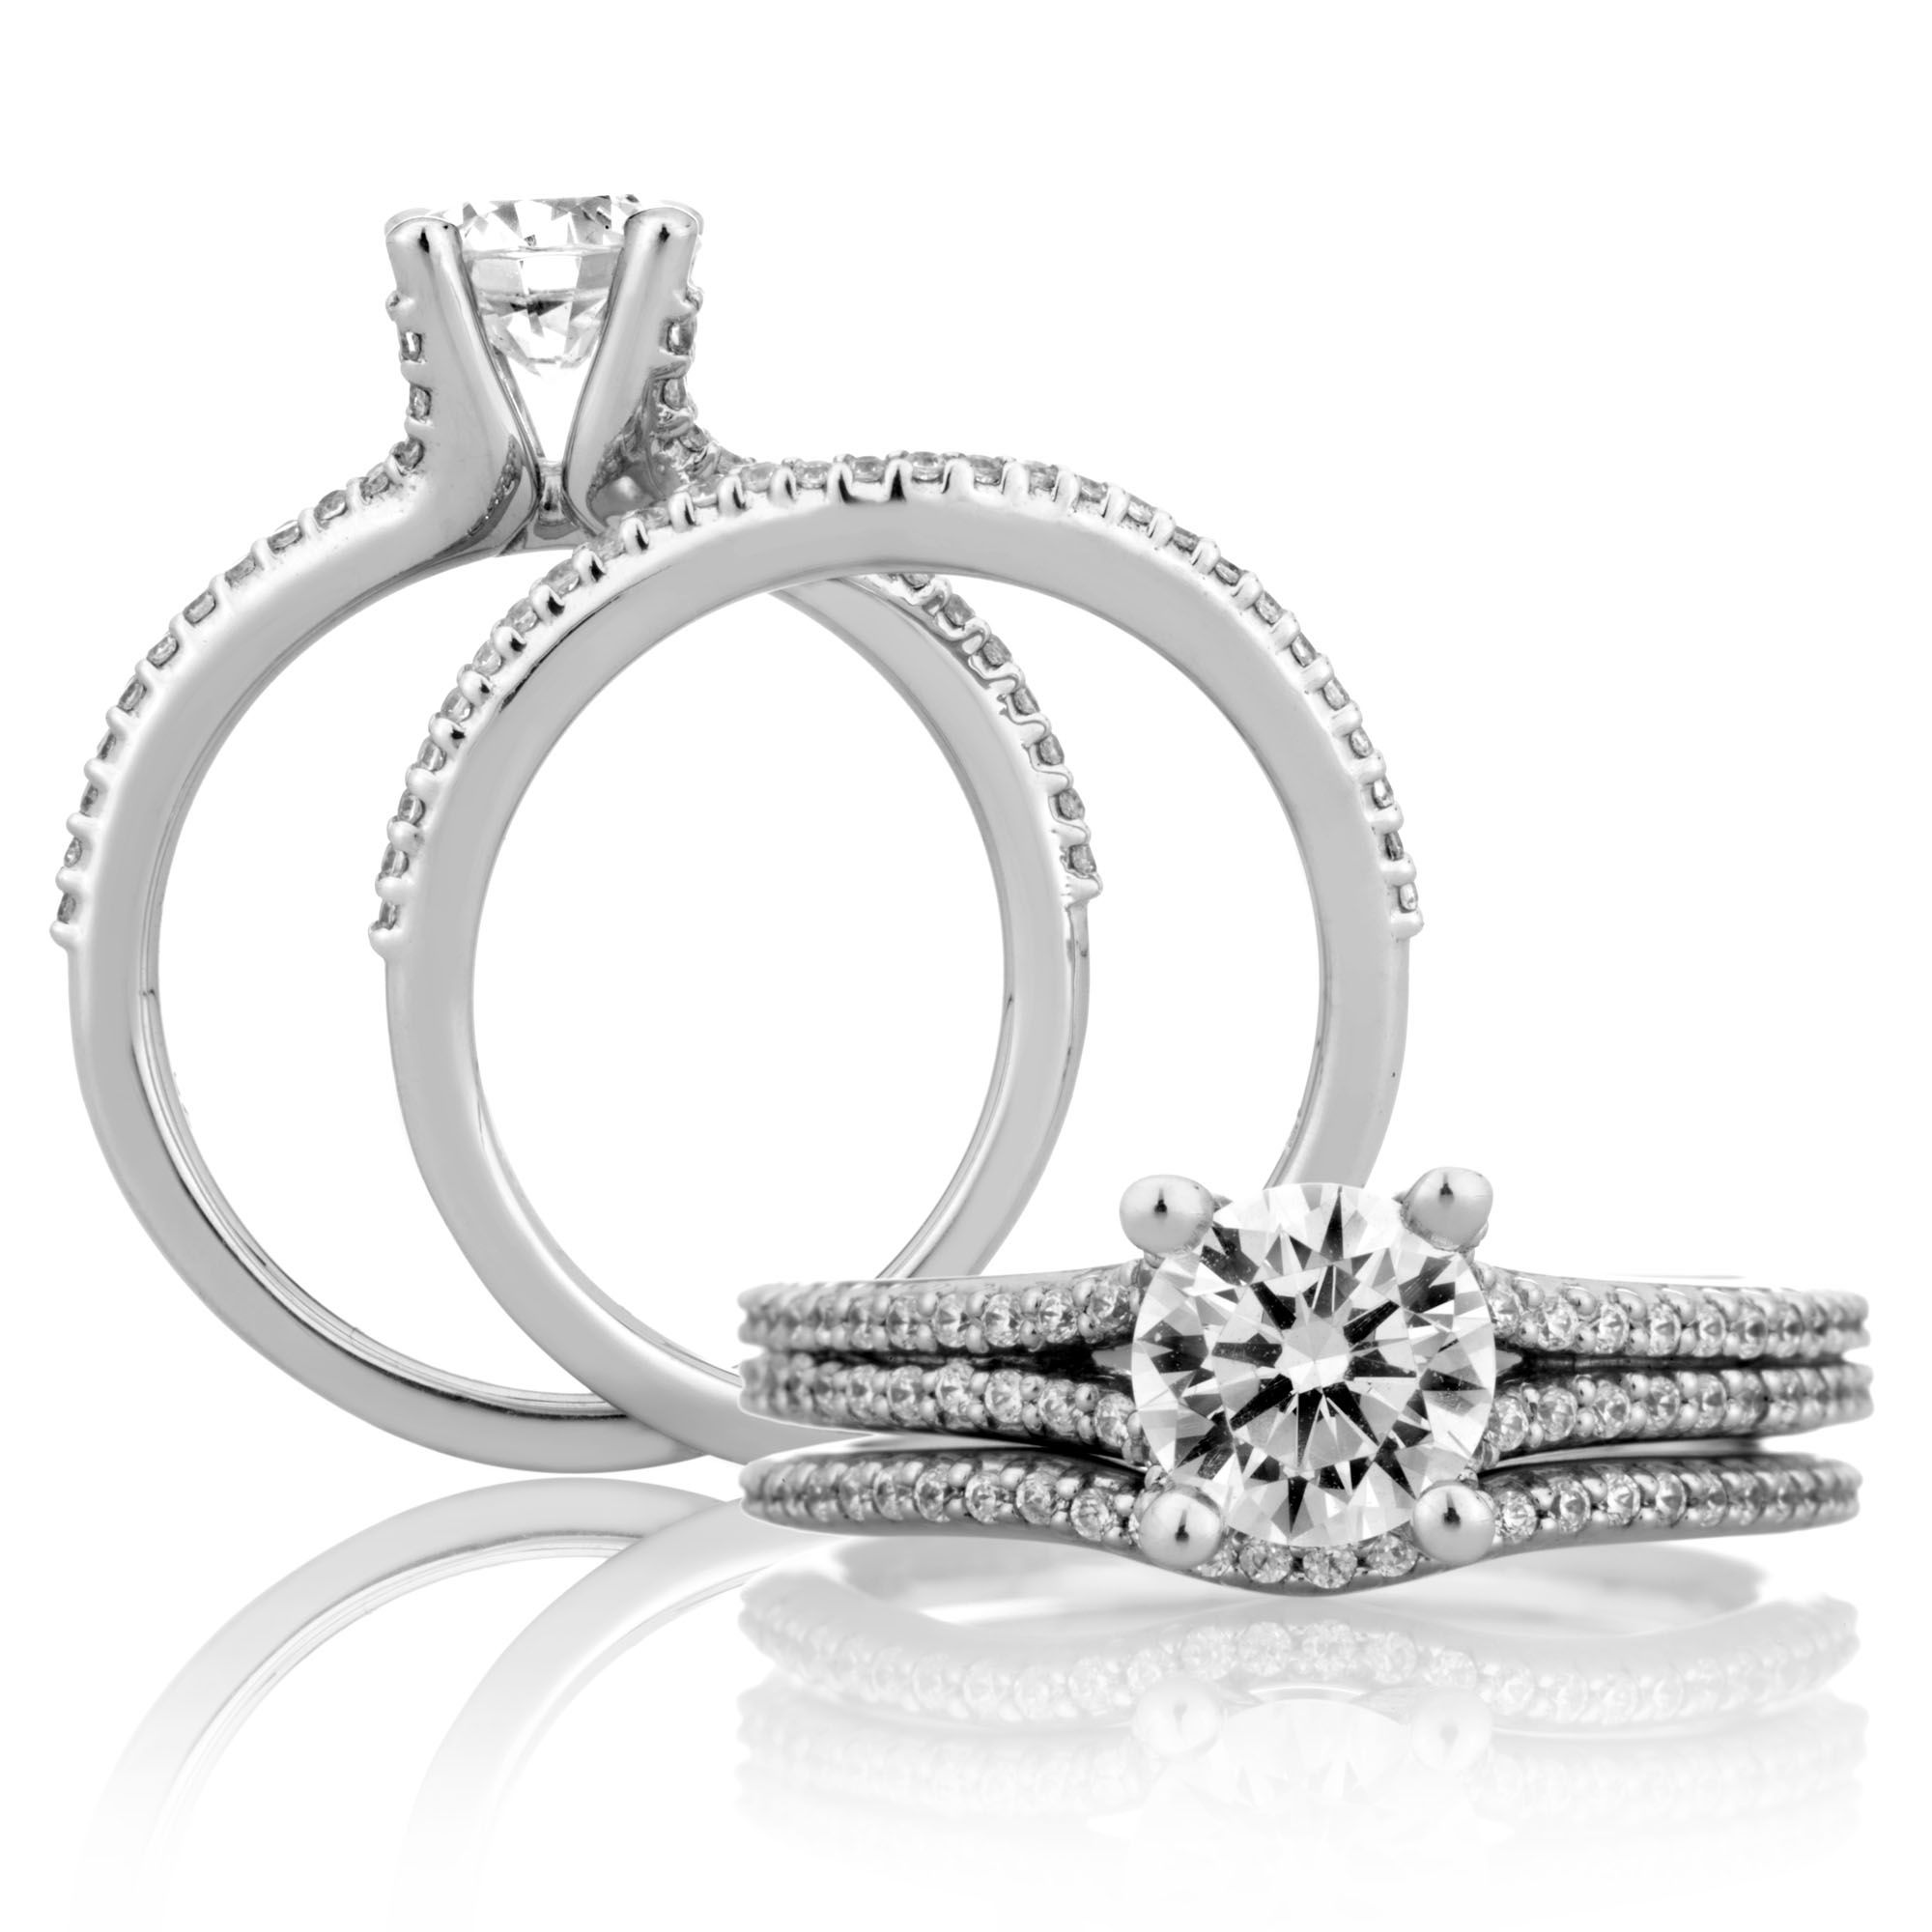 A. JAFFE's ME1432 Diana engagement ring! Diana